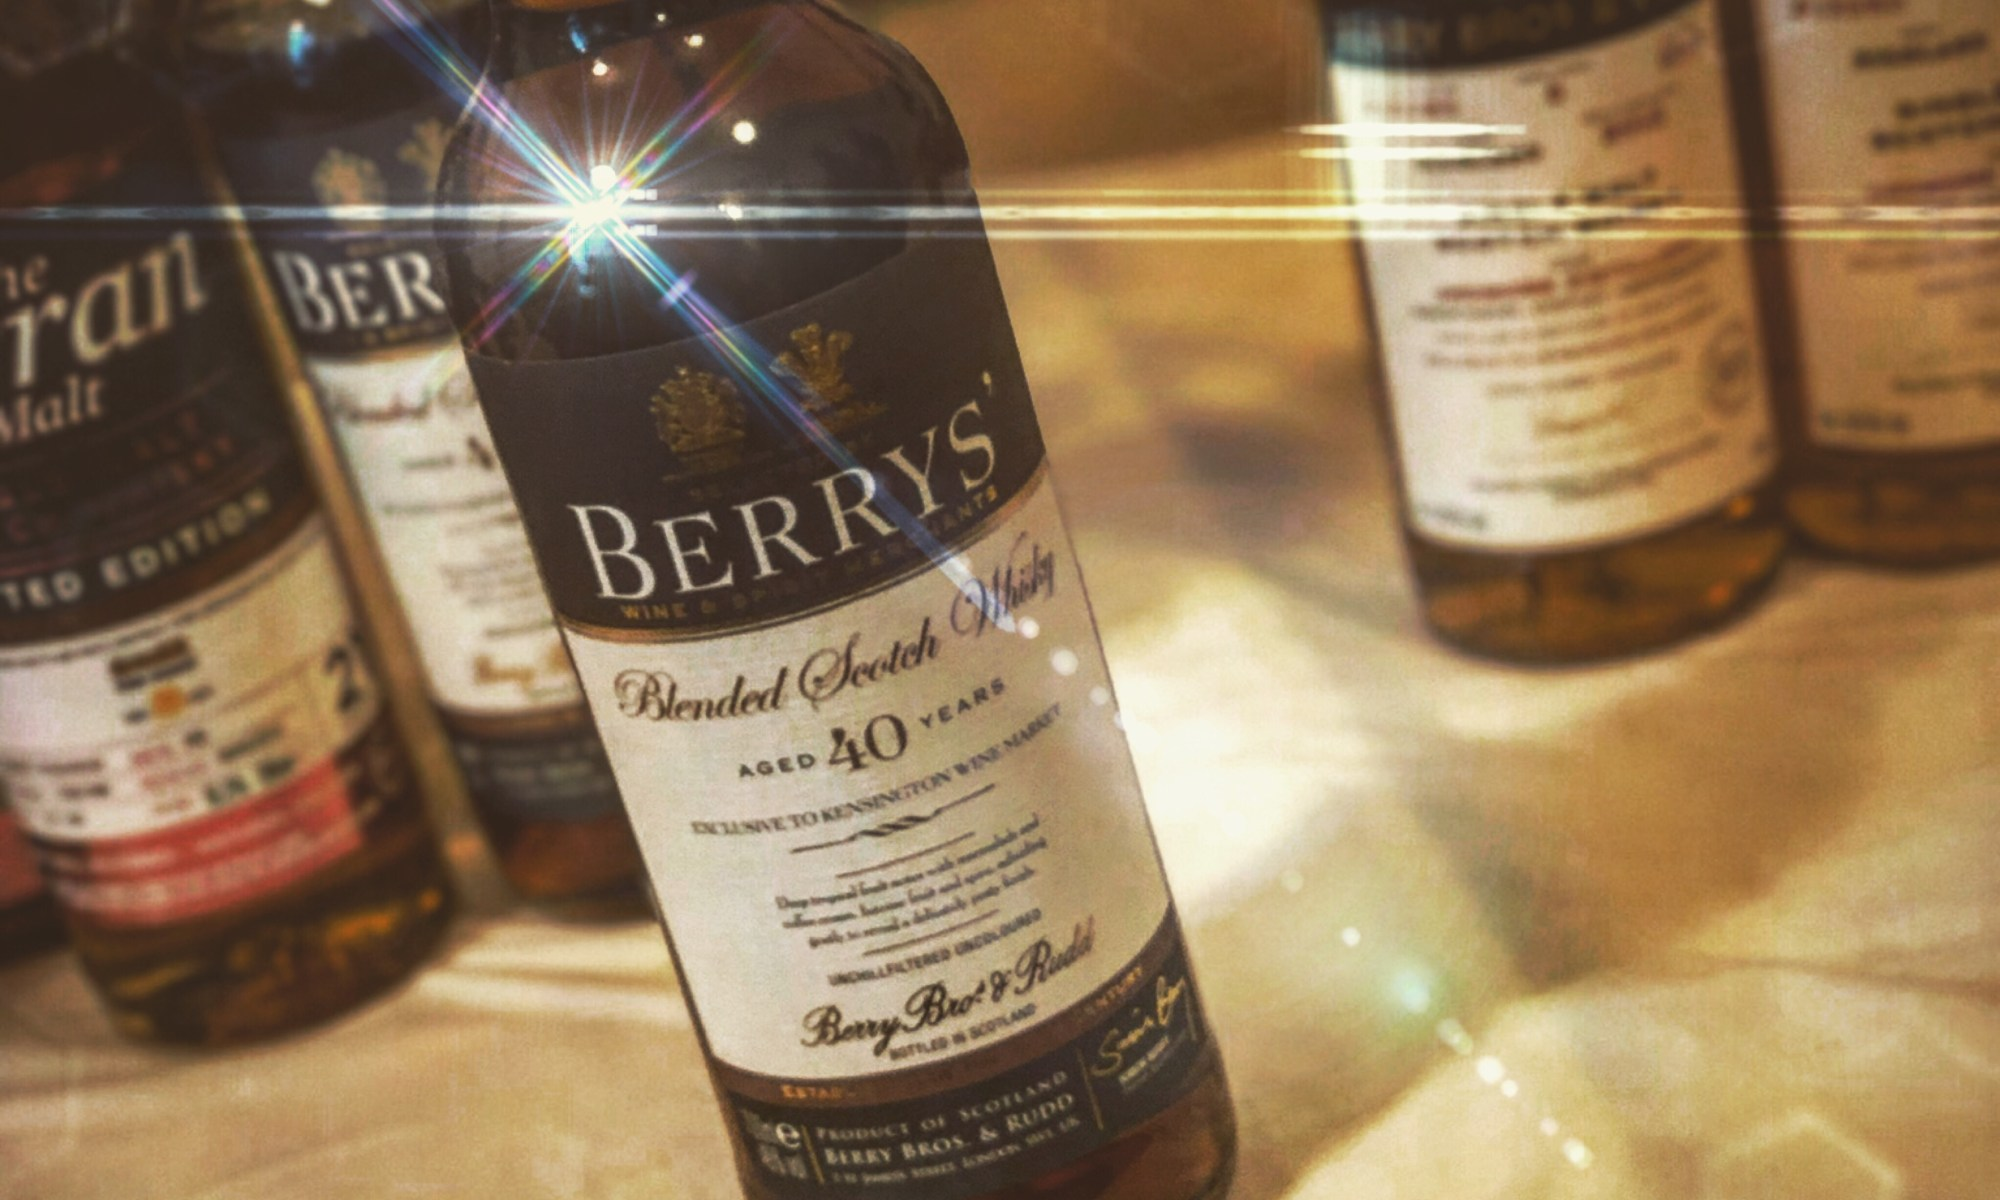 Berry Bros & Rudd Blended Scotch Whiskey 40 years